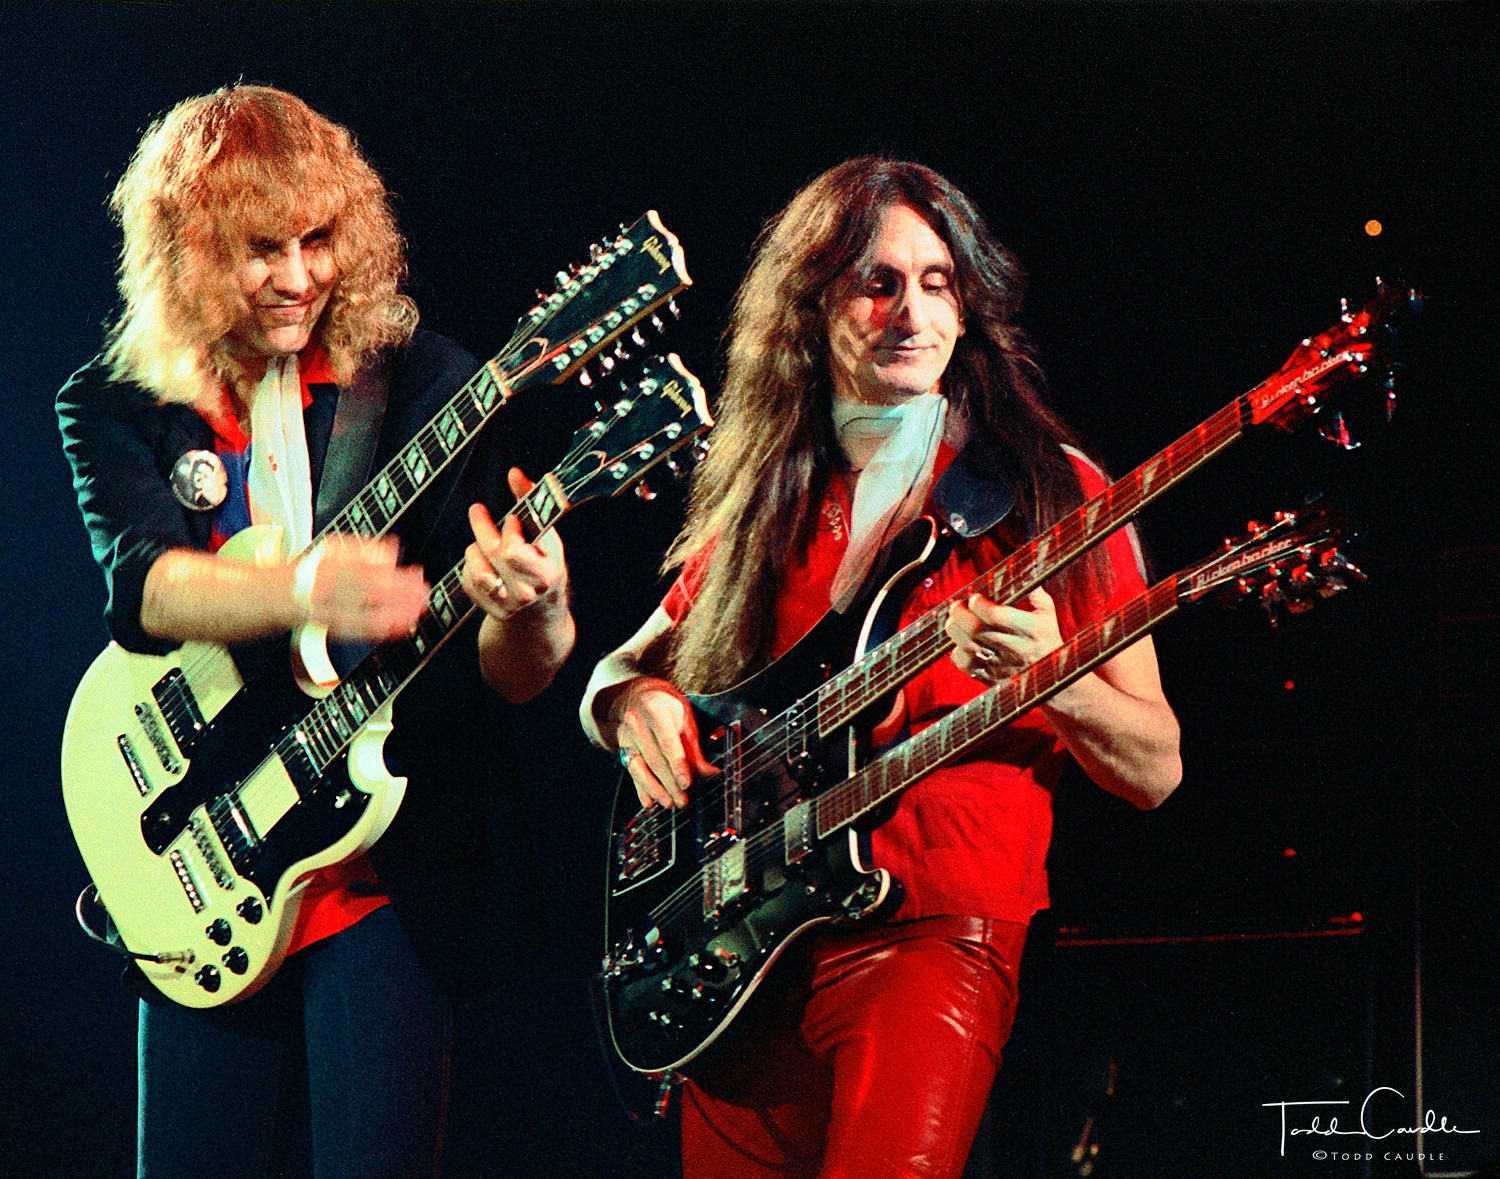 Alex Lifeson and Geddy Lee of Canadian progressive power trio Rush perform at McNichols Arena in Denver on March 1, 1980.